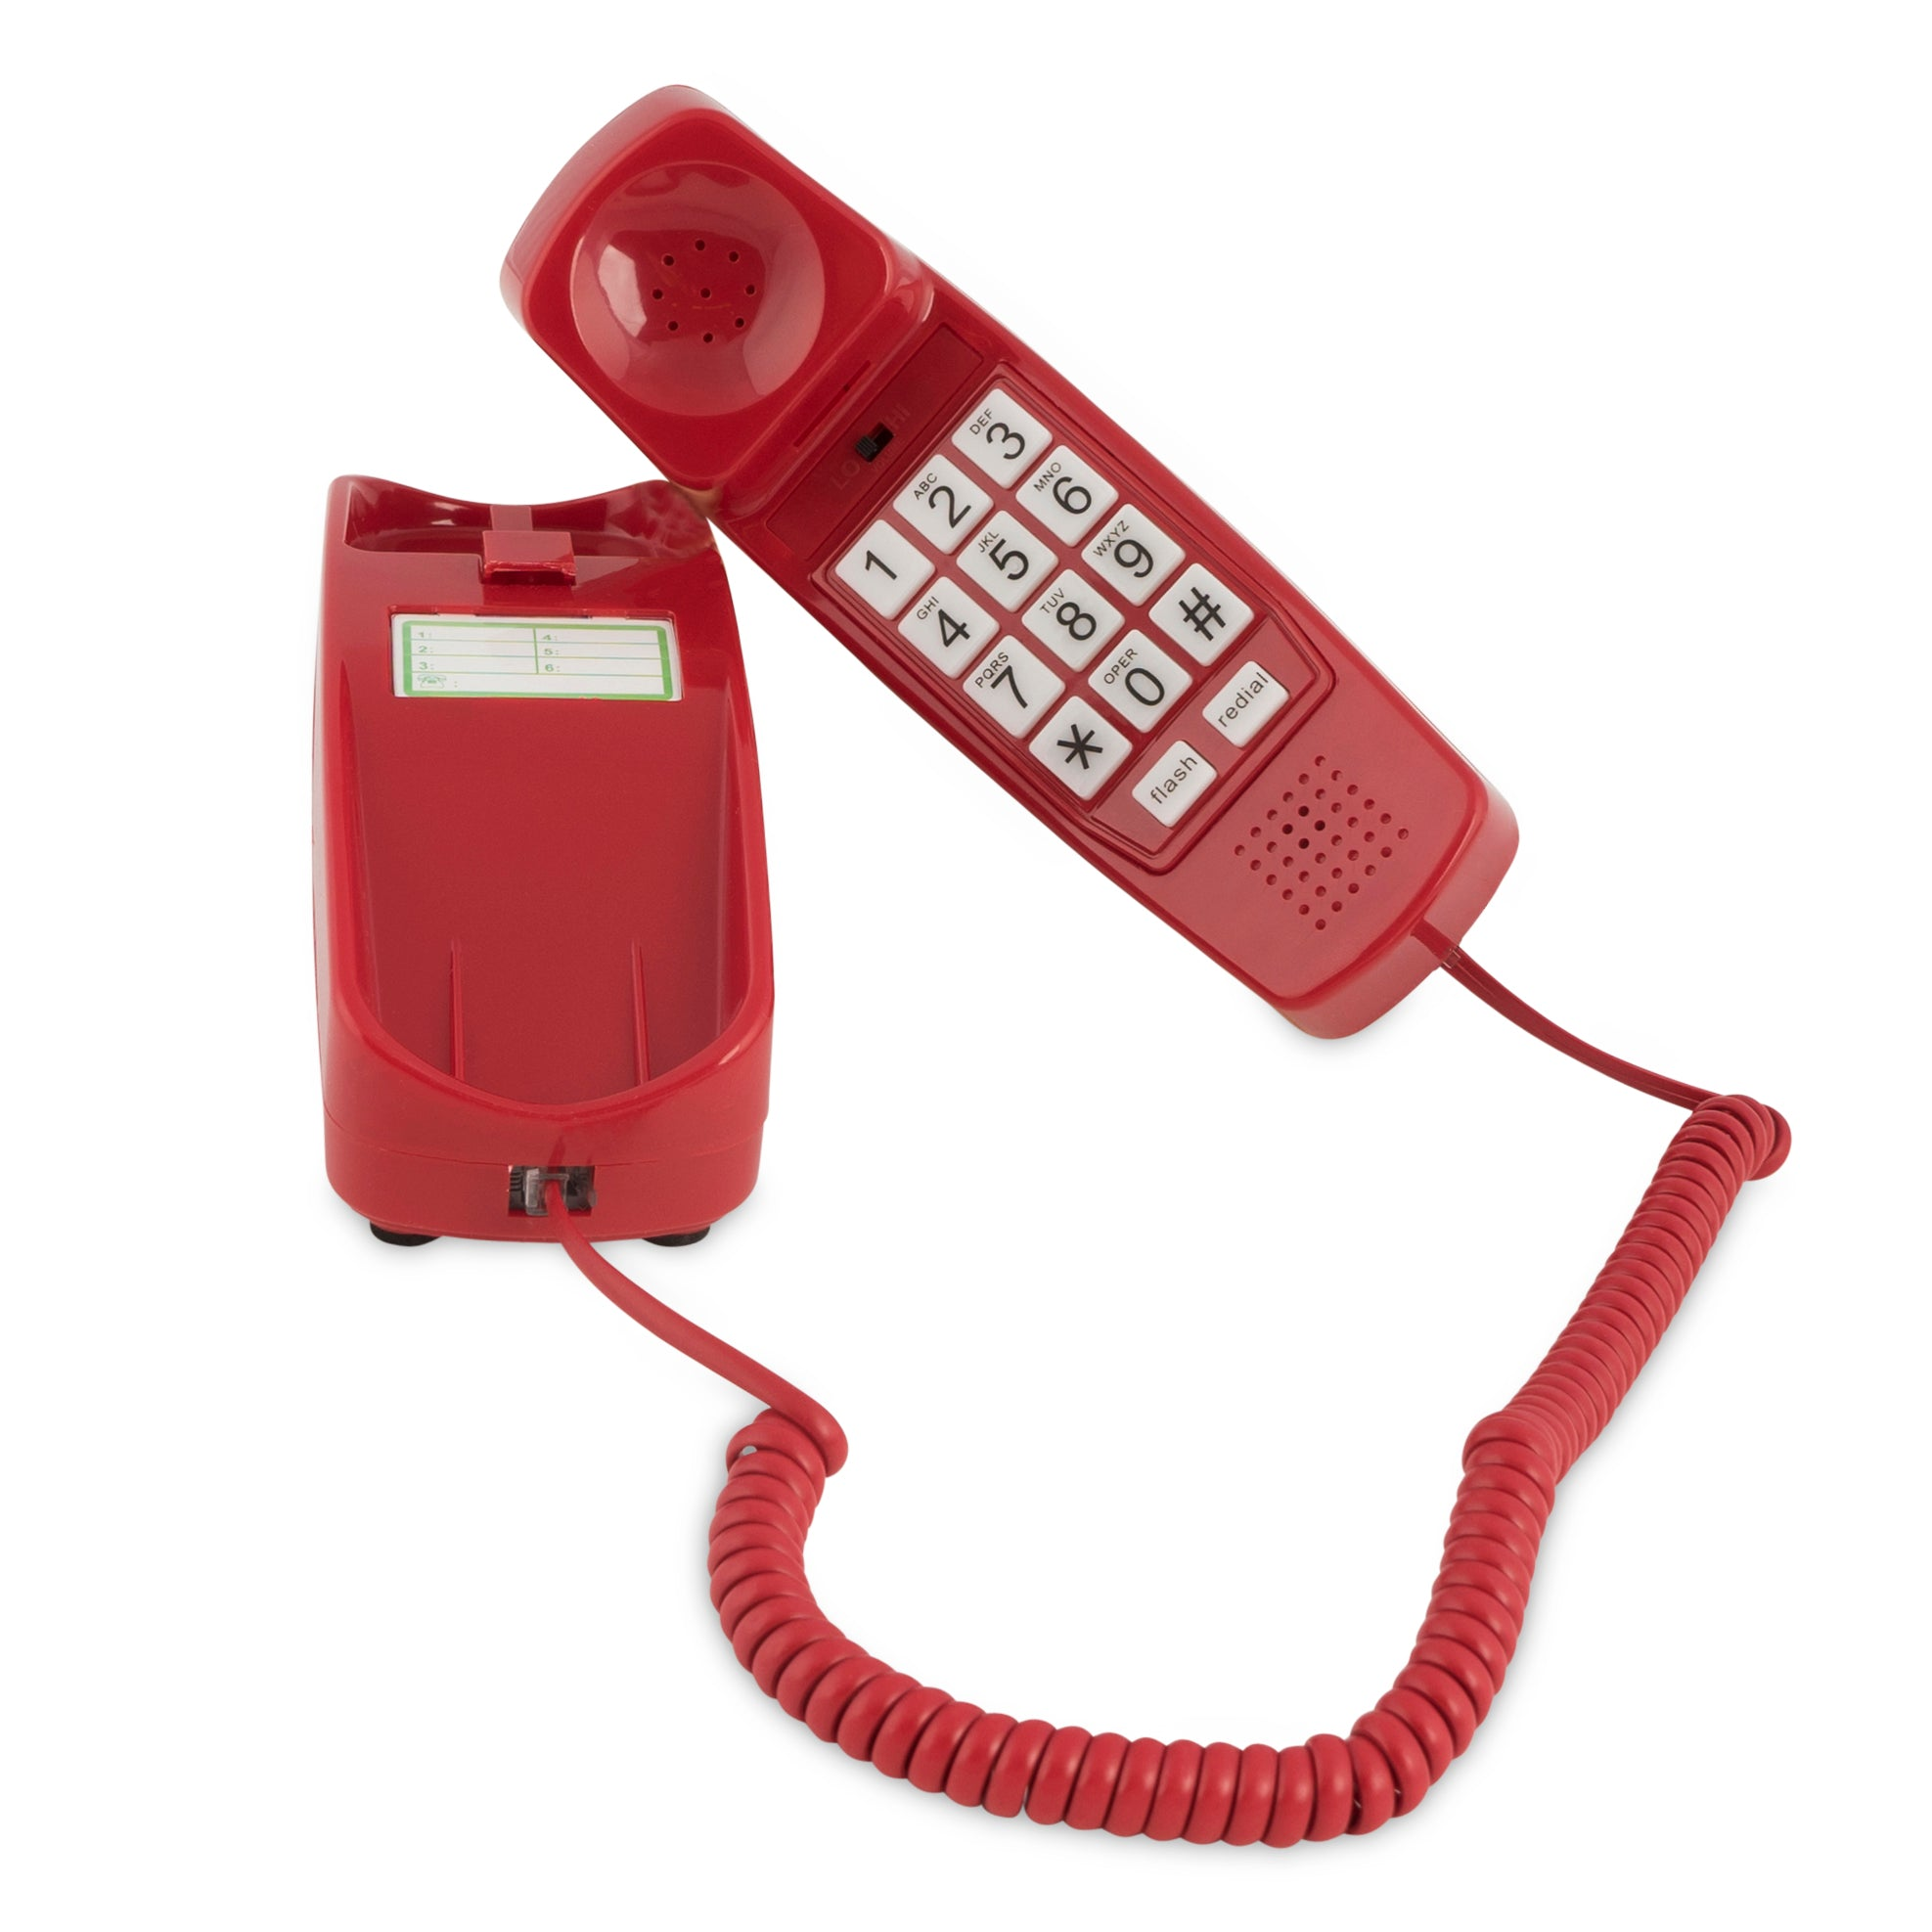 Trimline Corded Phone - Crimson Red